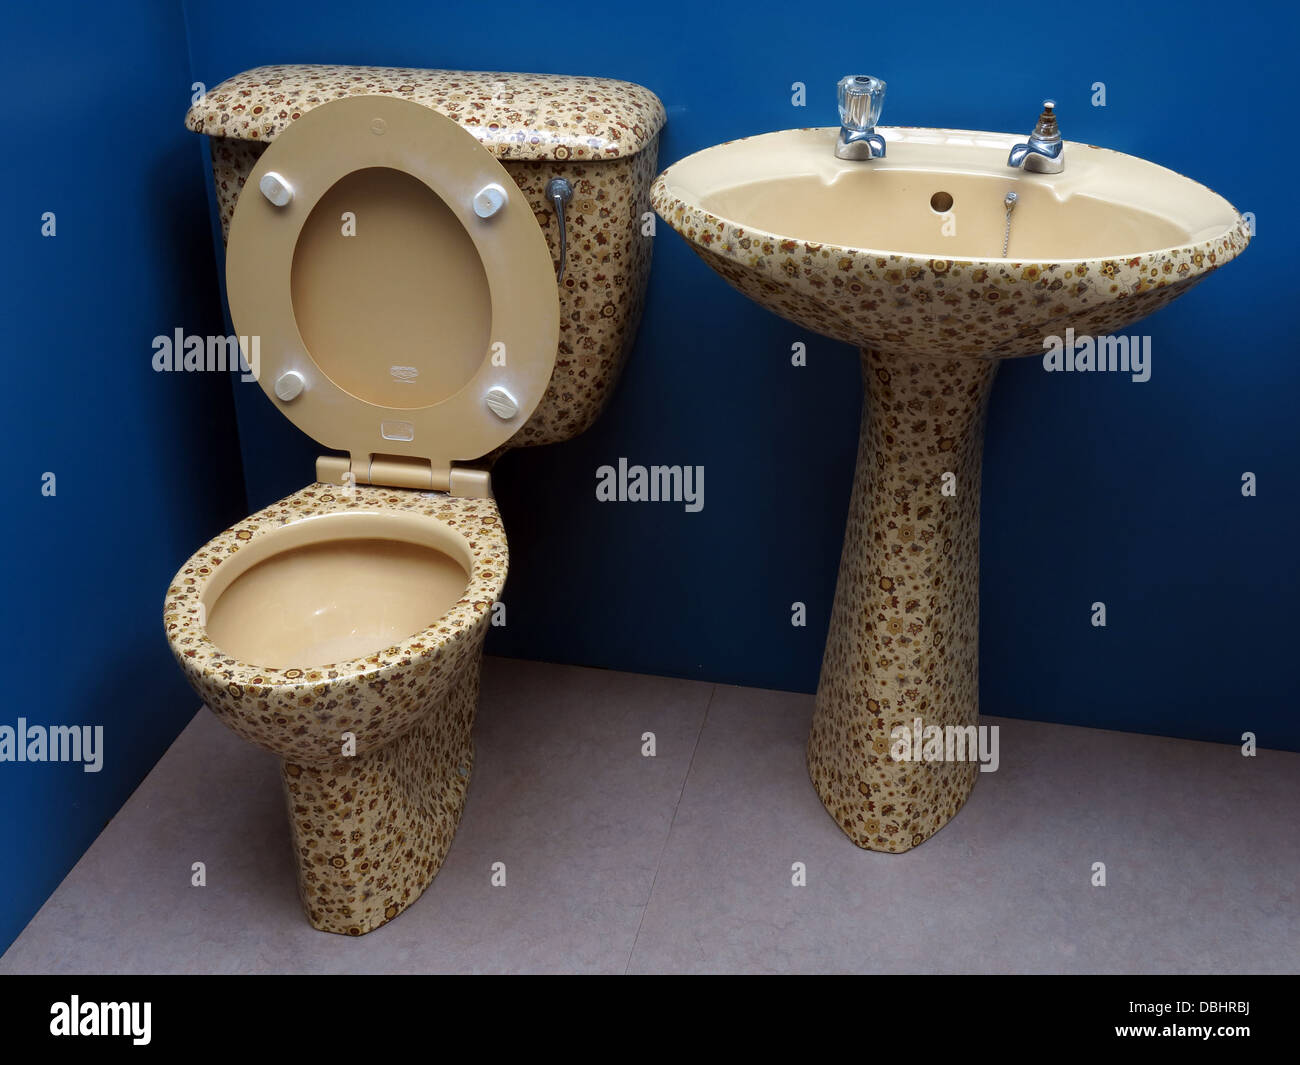 Exciting 1980's bathroom suite toilet & pedestal sink unit - Stock Image